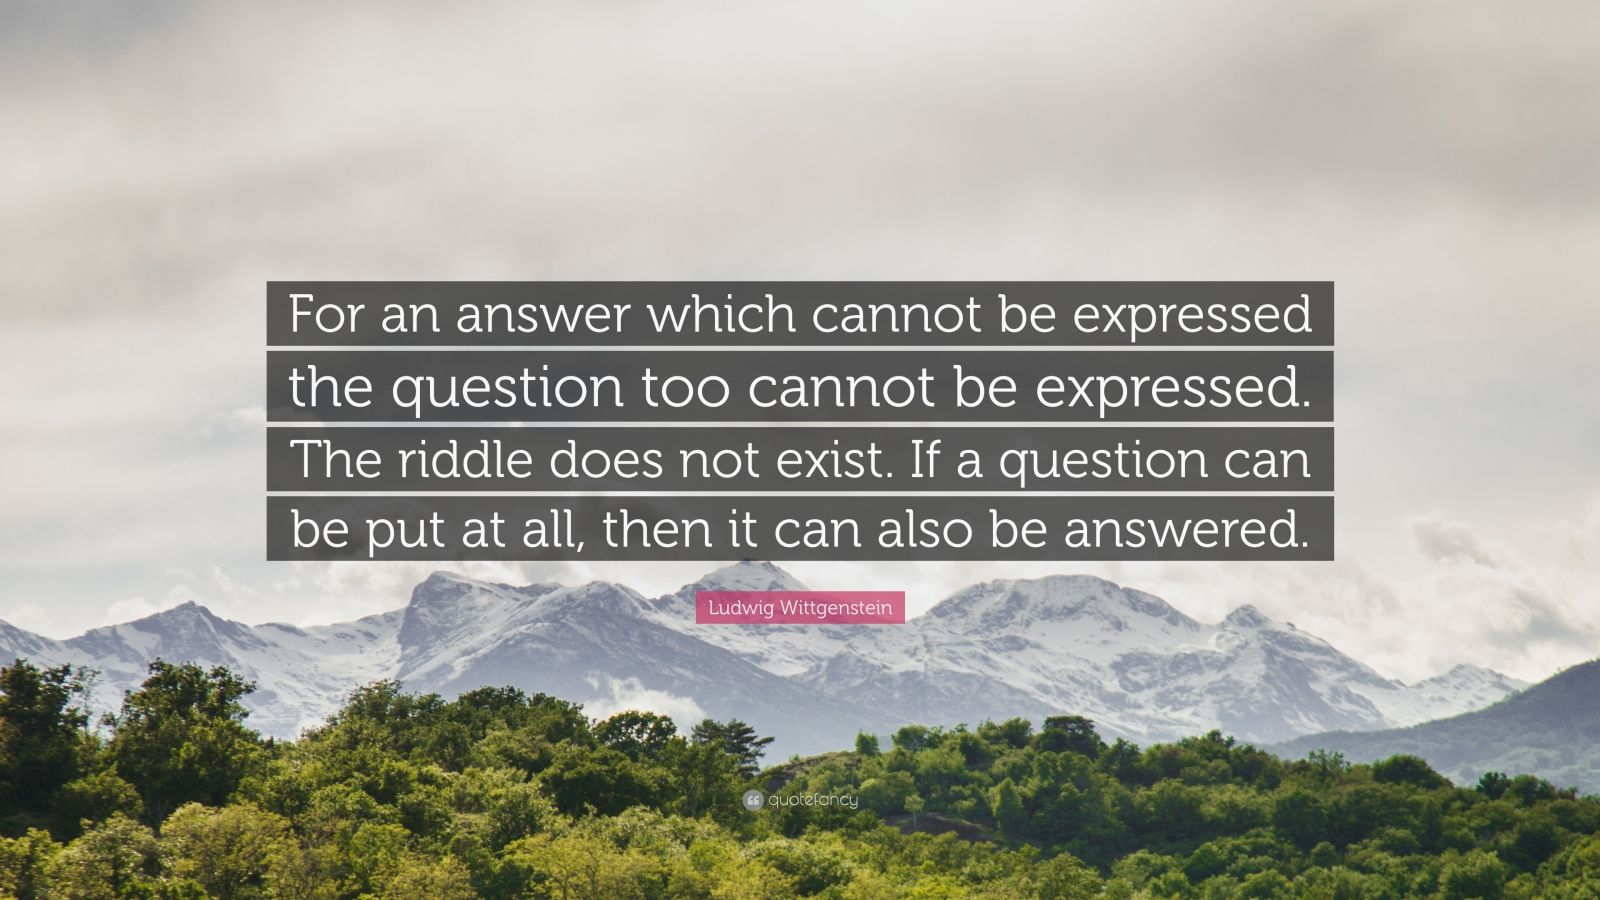 """Ludwig Wittgenstein Quote: """"For an answer which cannot be expressed the question too cannot be expressed. The riddle does not exist. If a question can be put at all, then it can also be answered."""""""